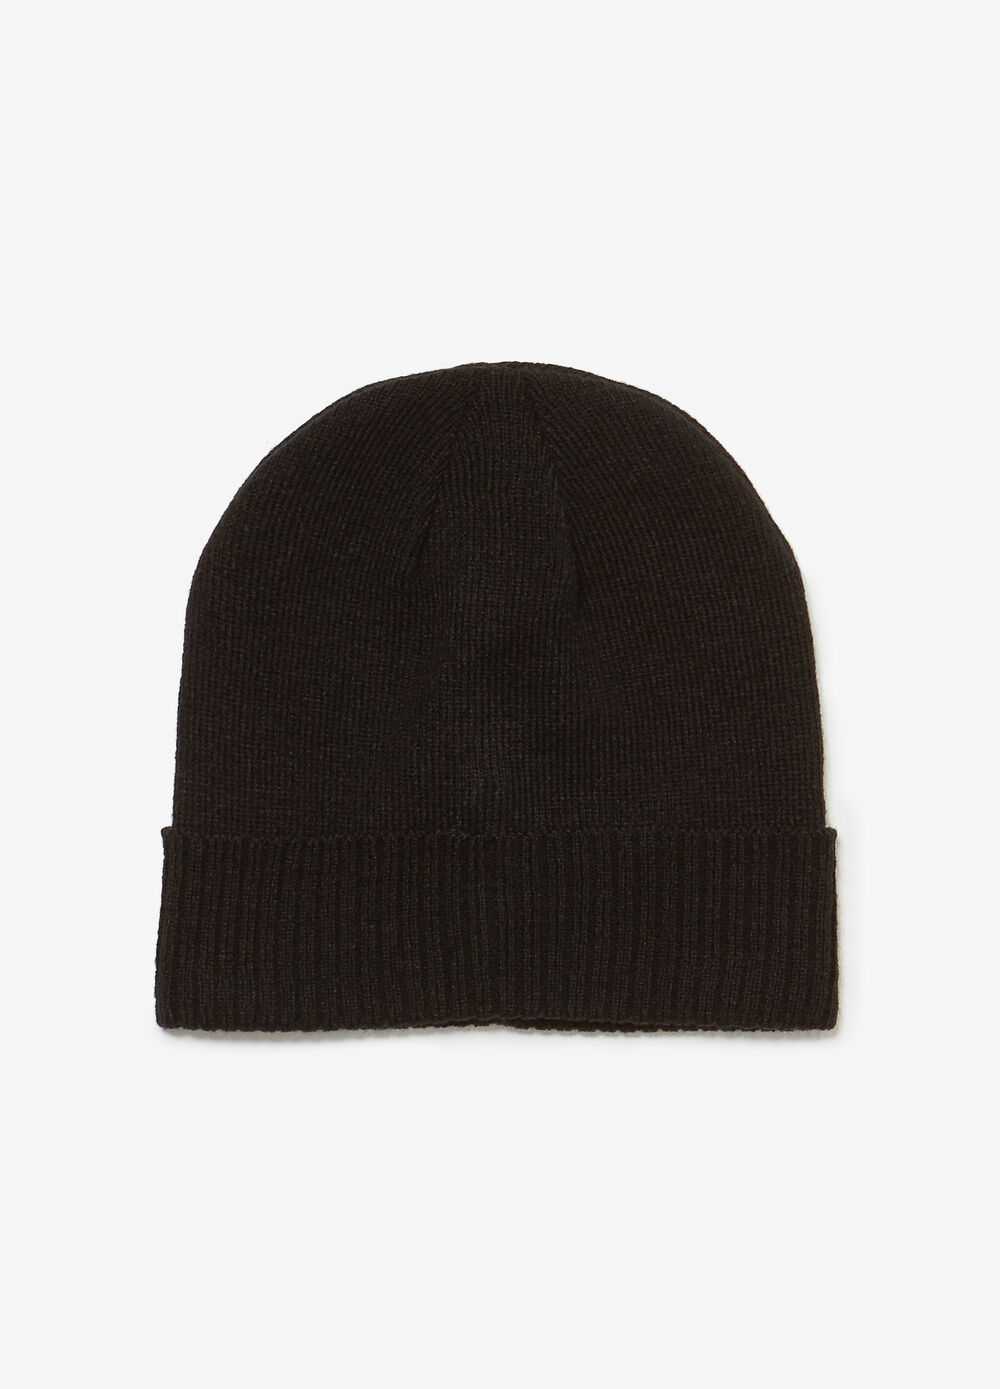 Jersey hat with turn-up